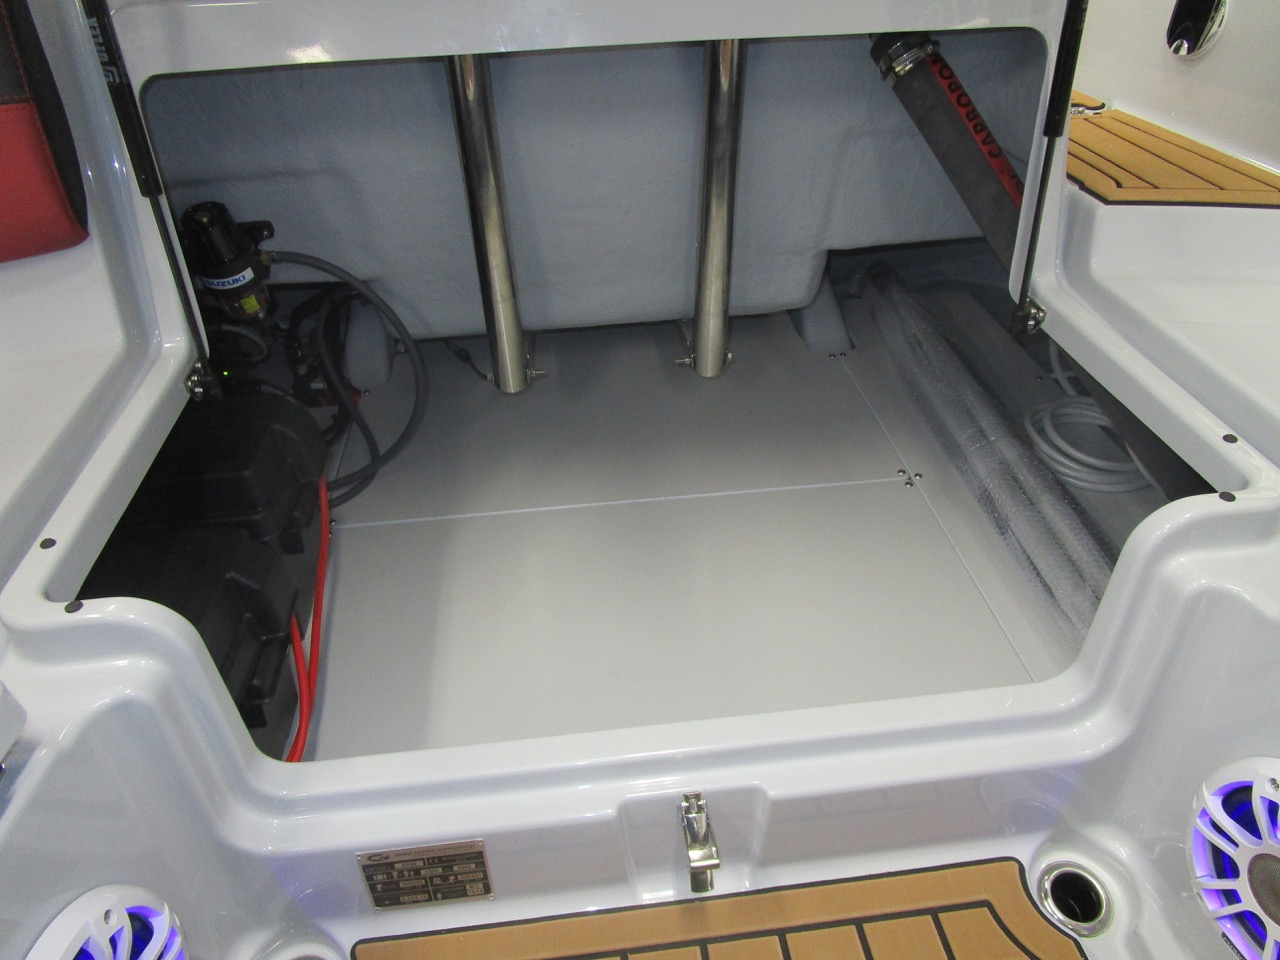 GRAND G750 RIB rear seat locker